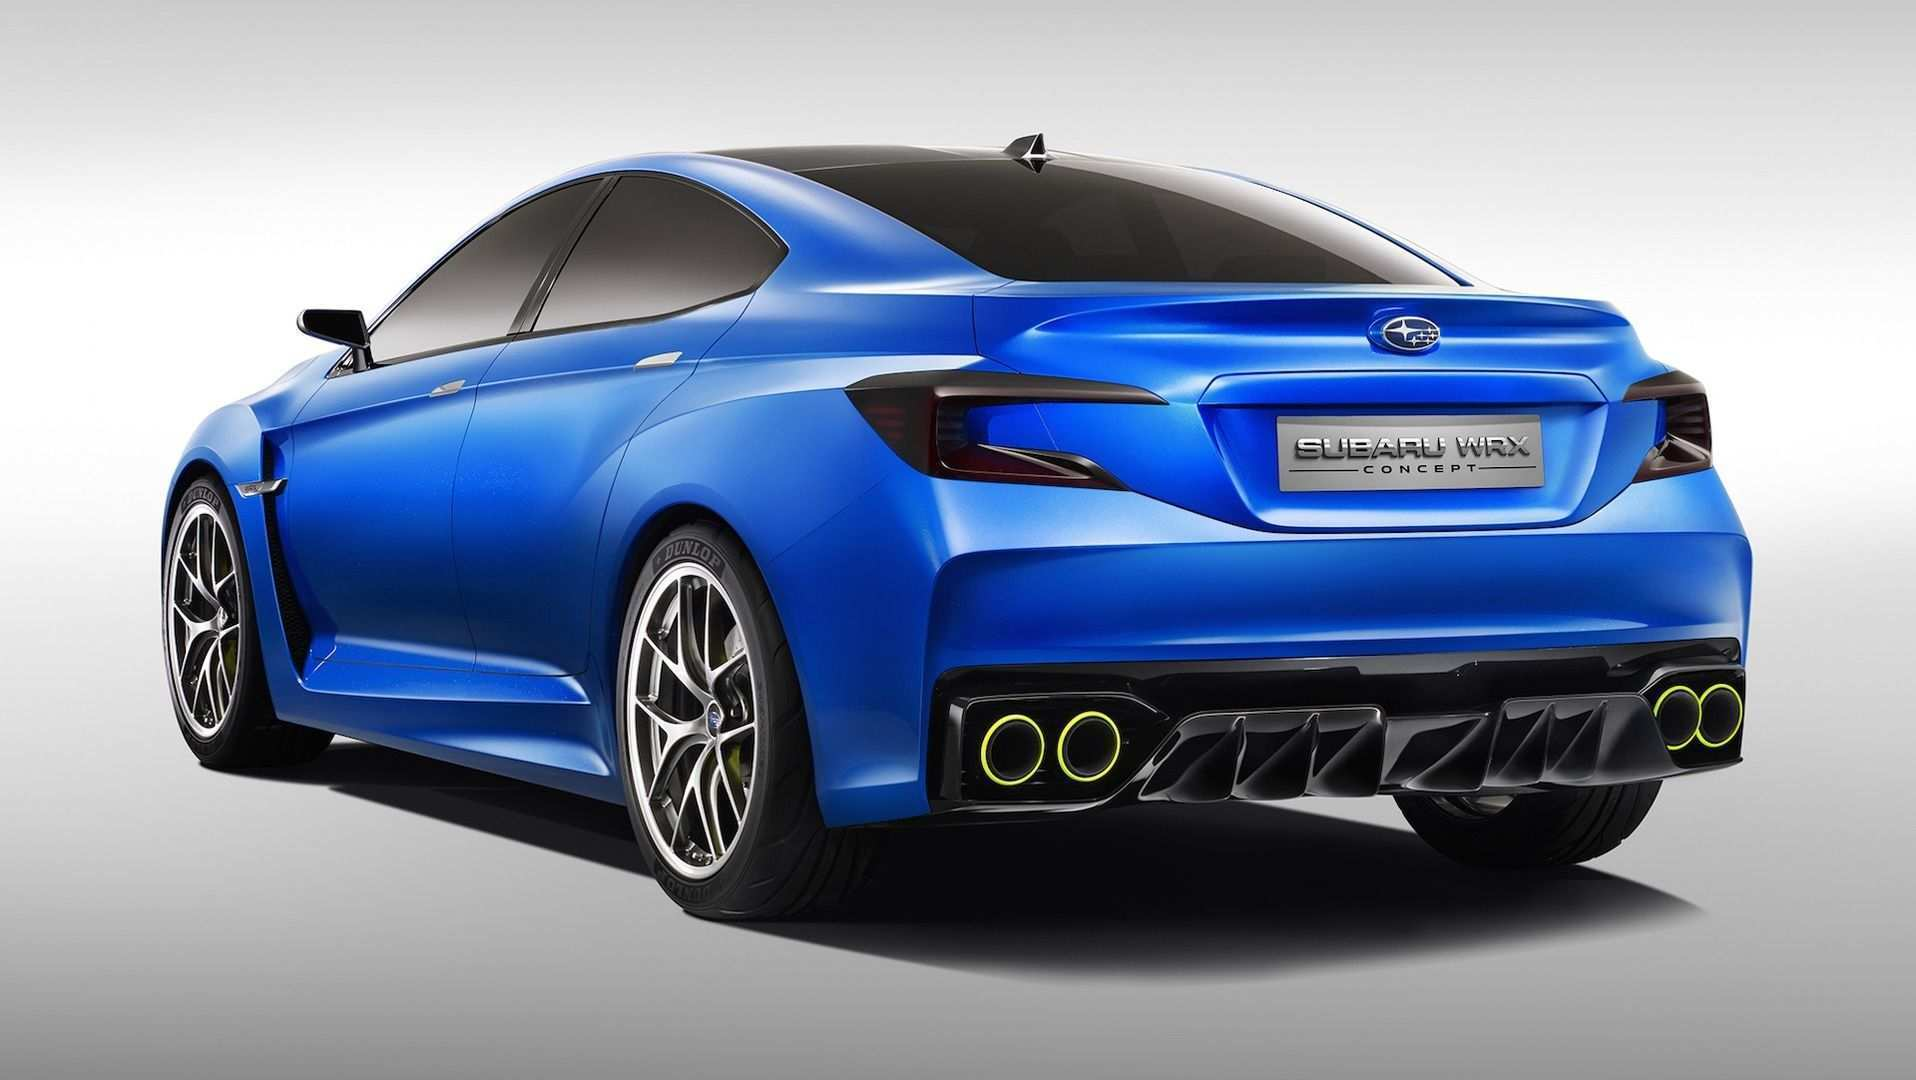 48 Concept of Subaru Sti 2020 Exterior Reviews by Subaru Sti 2020 Exterior